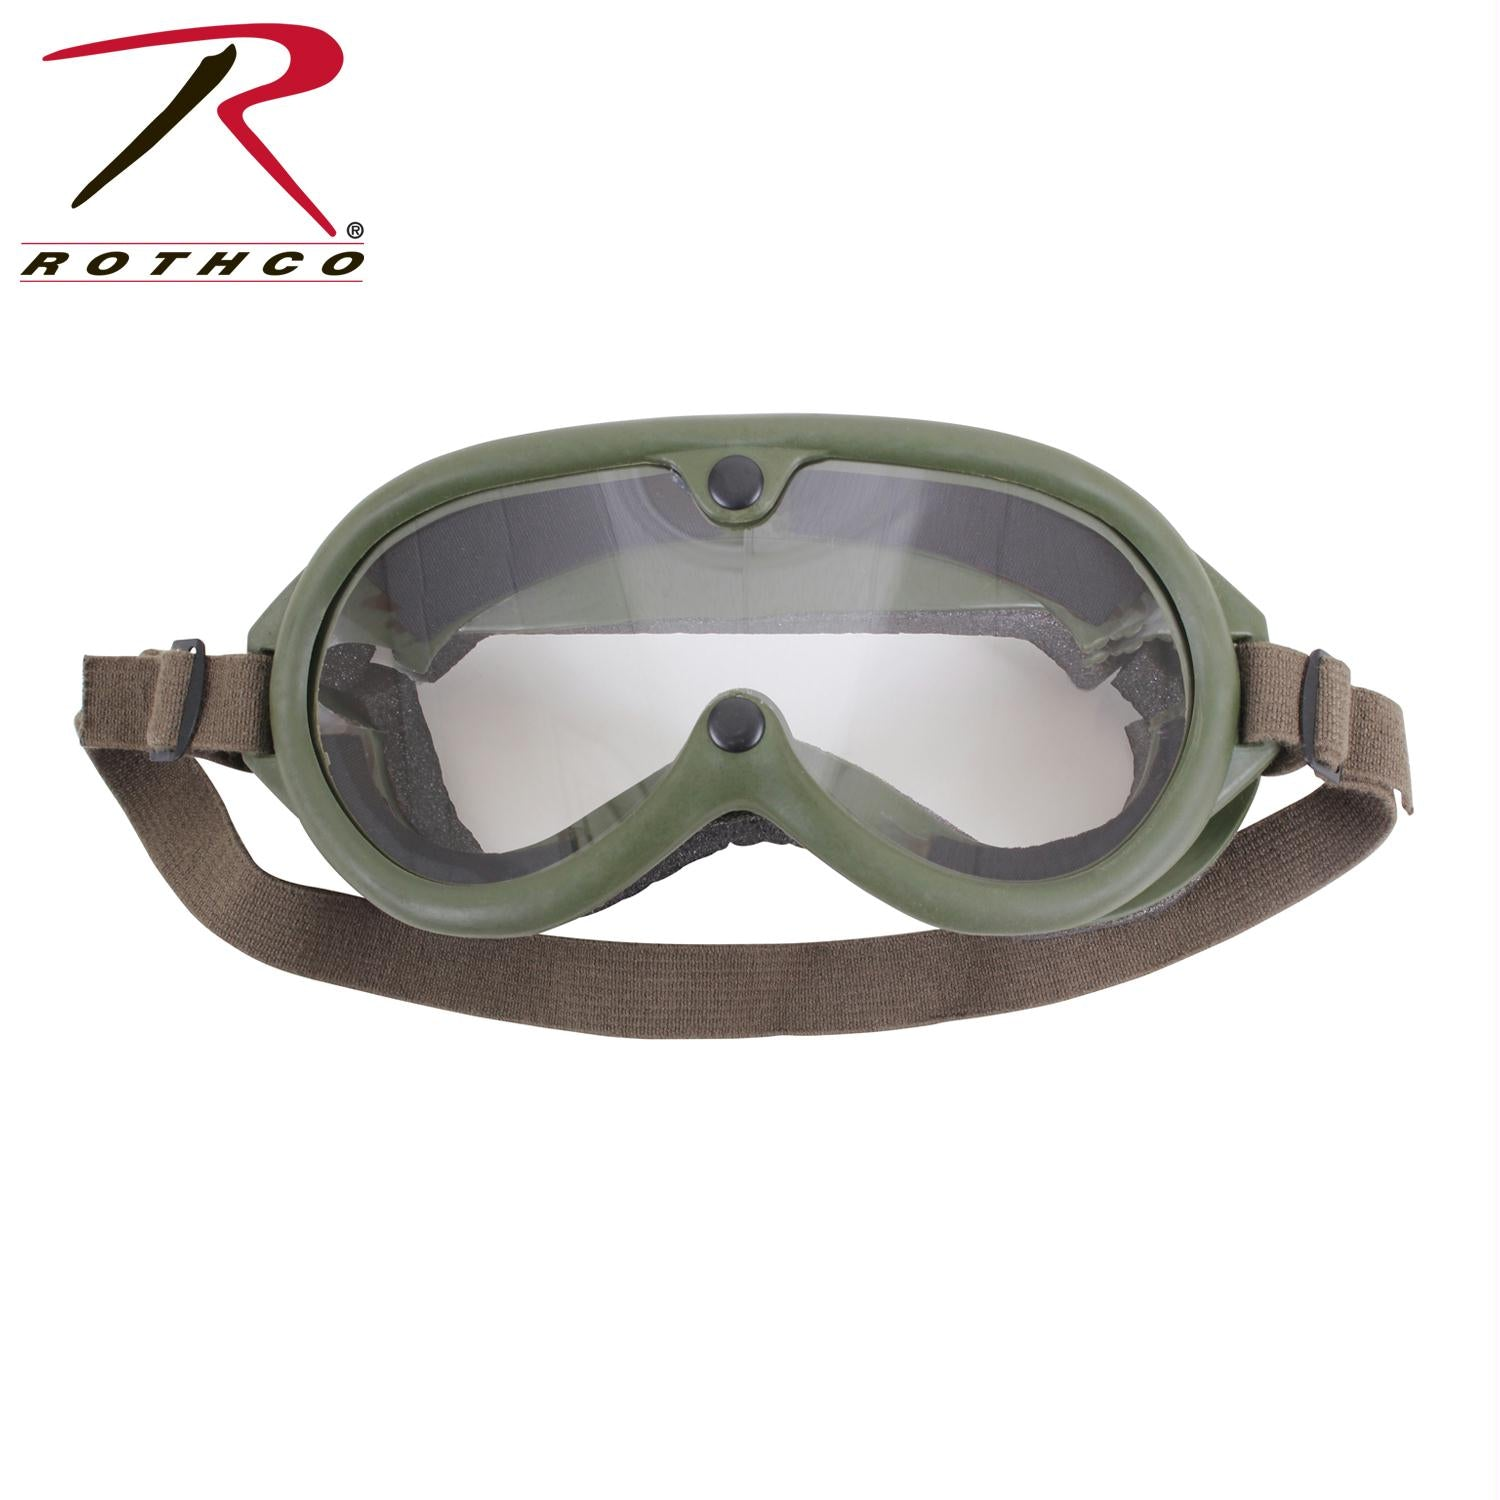 Rothco G.I. Type Sun, Wind & Dust Goggles - Olive Drab